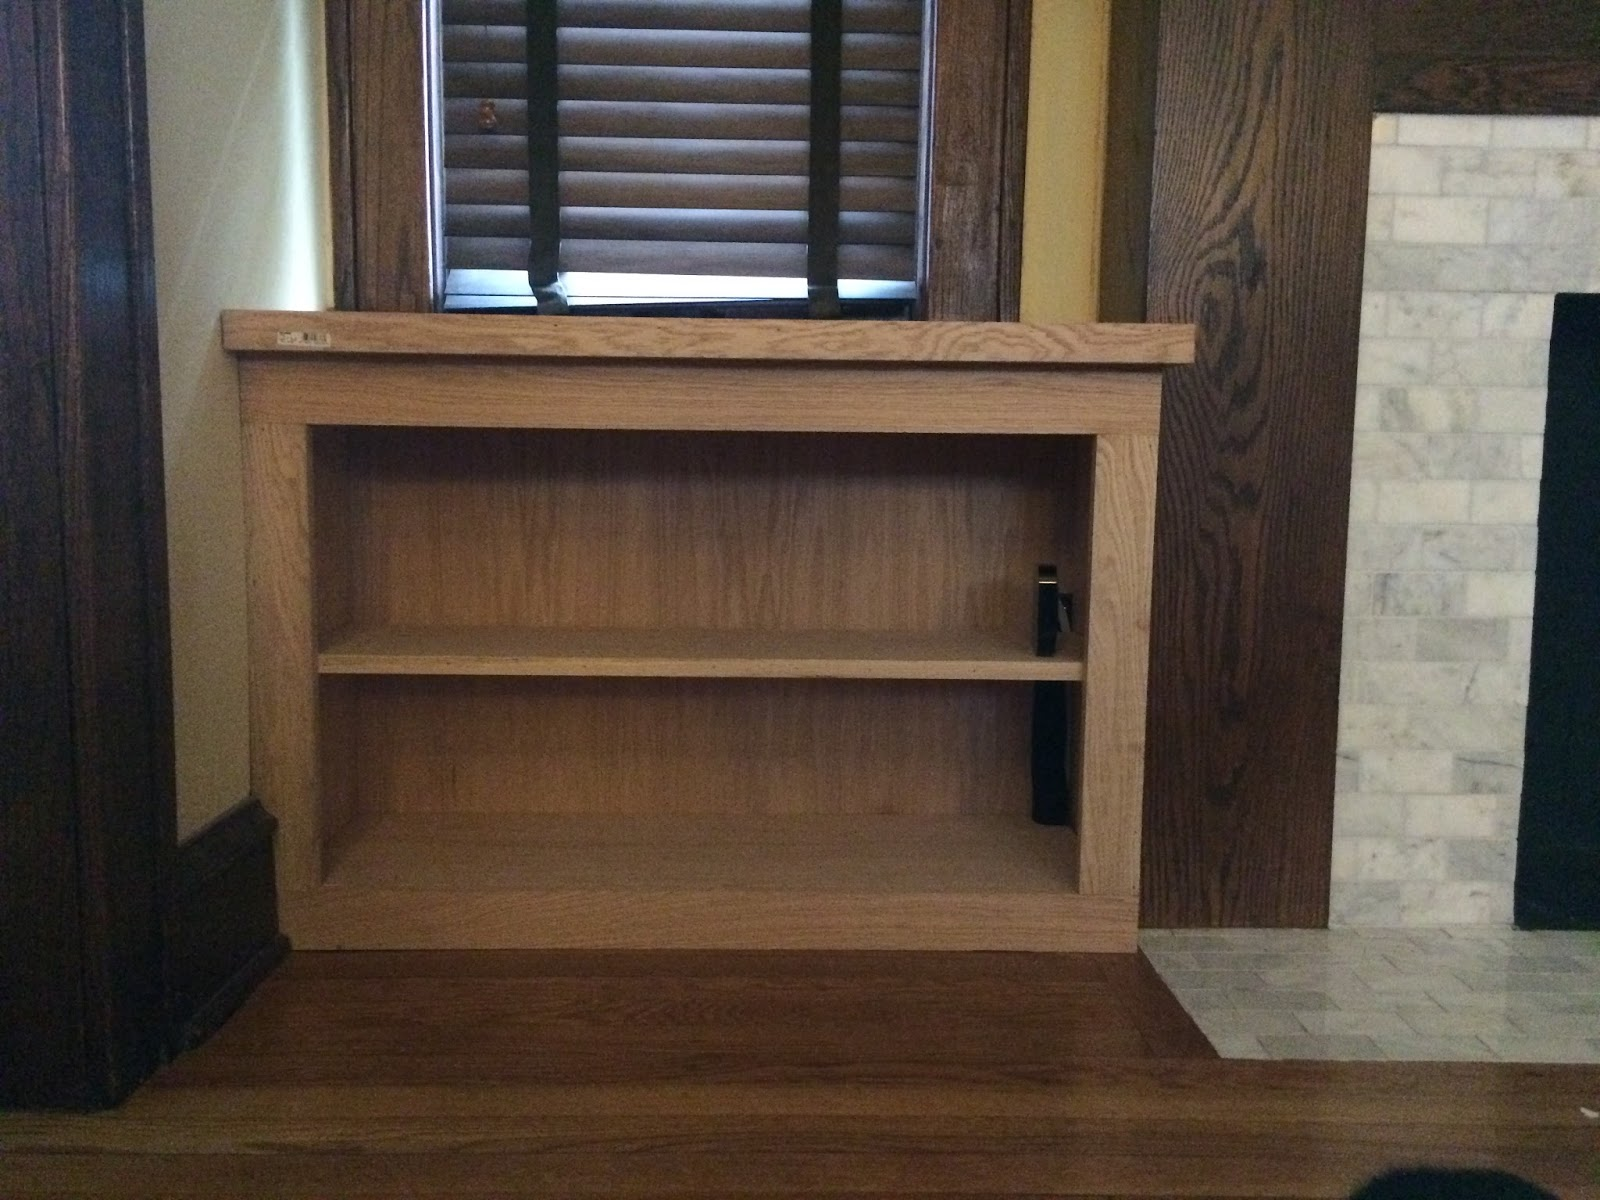 Craftsman style built in cabinets - After Finishing The Box And Counter I Made Measurements For The Doors